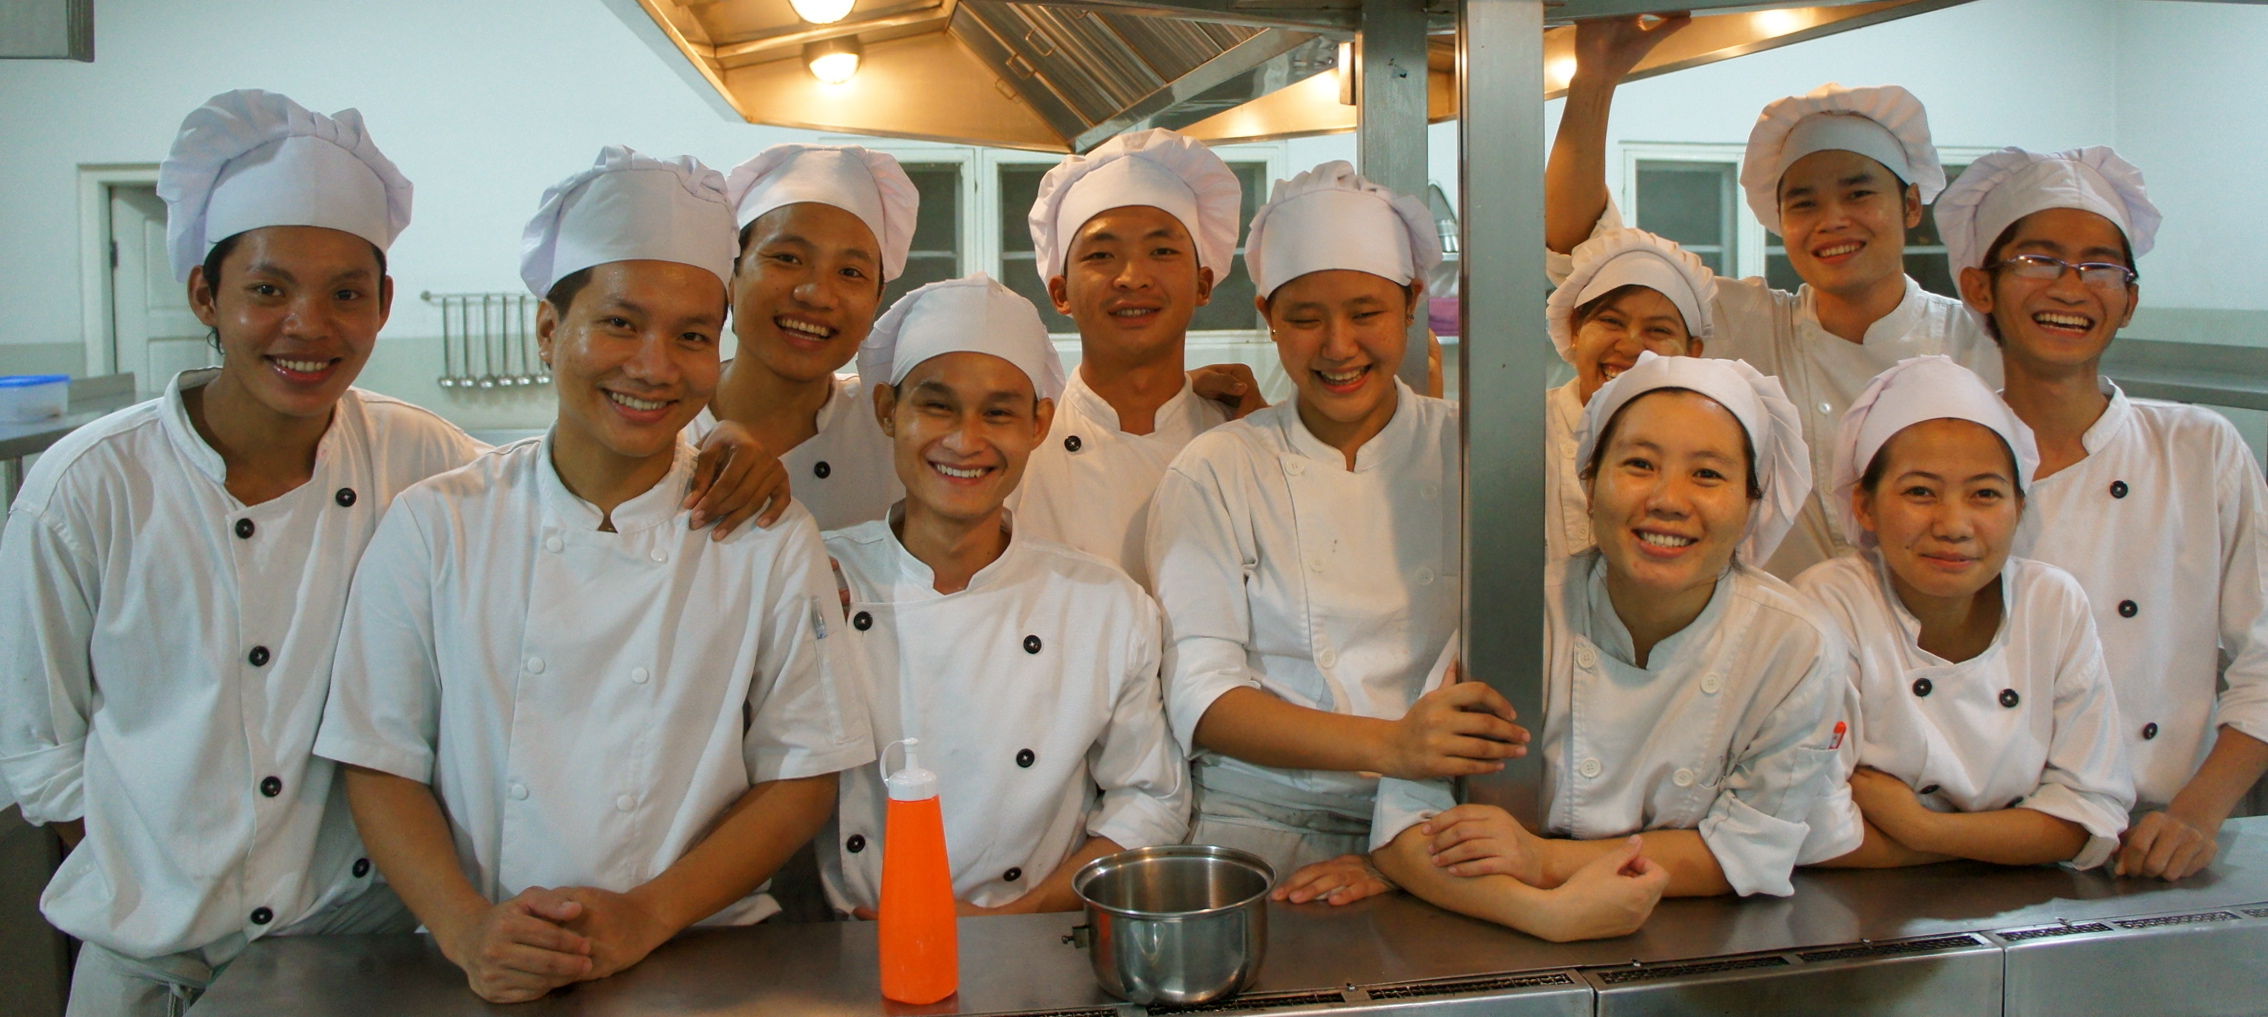 Cooking students team